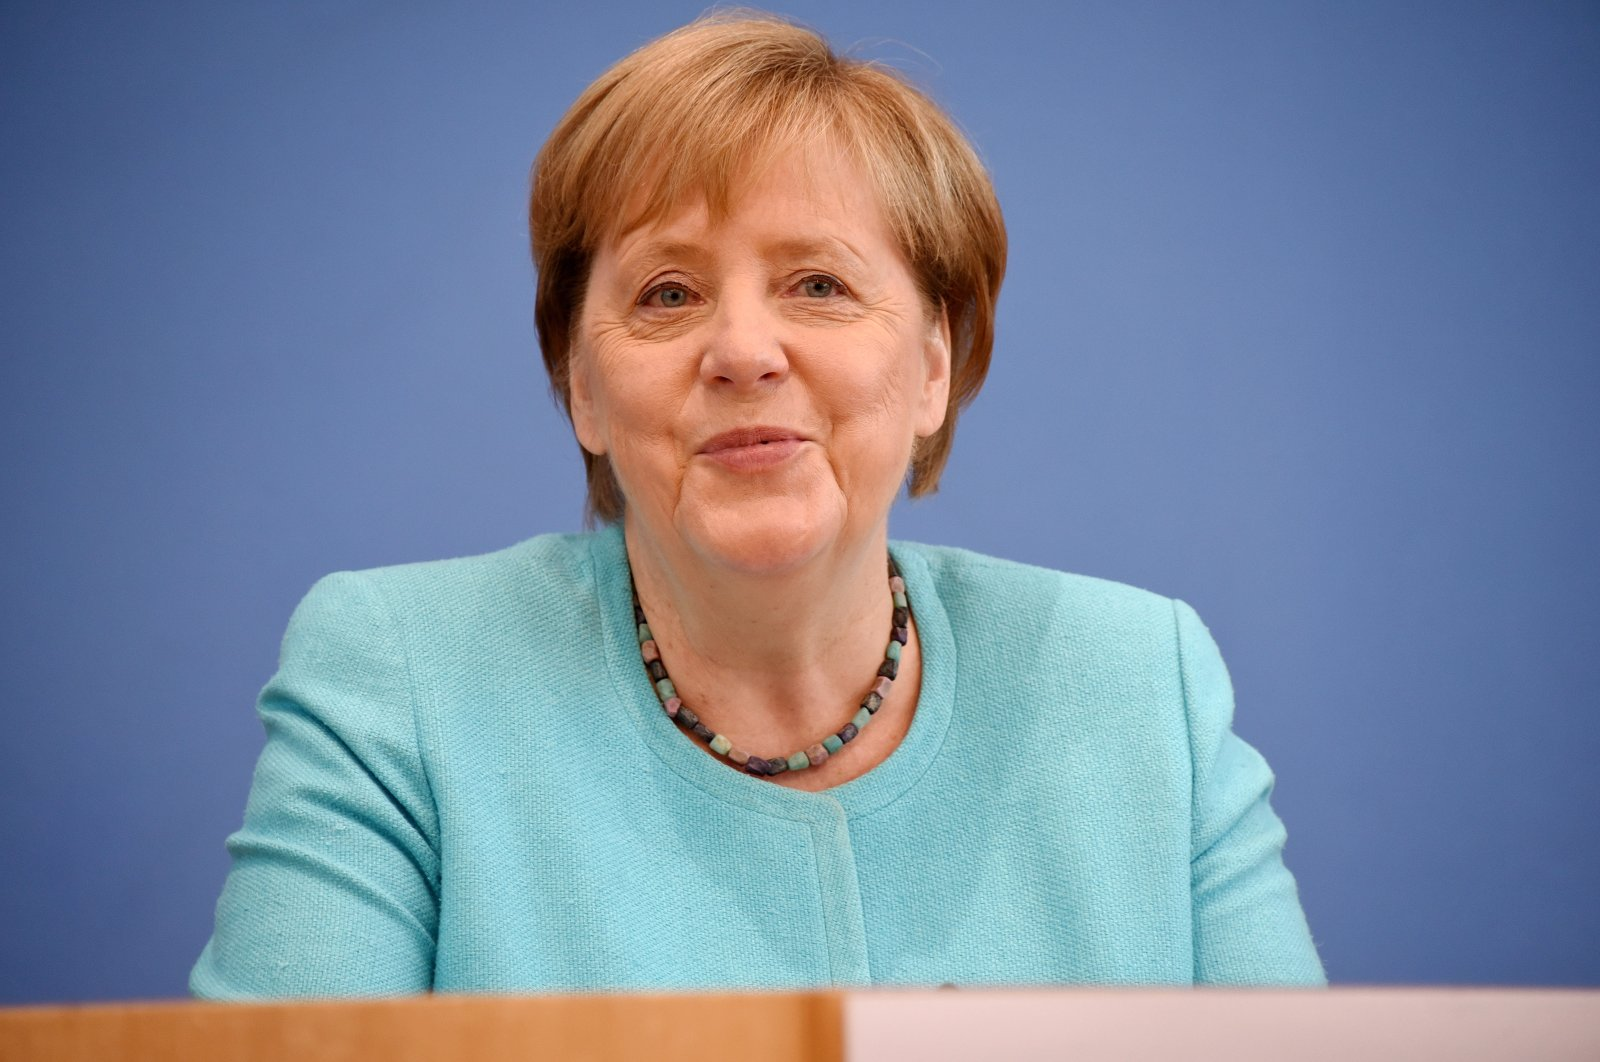 German Chancellor Angela Merkel holds her annual summer press conference at the Federal Press Conference (Bundespressekonferenz) in Berlin, Germany, July 22, 2021. (EPA Photo)